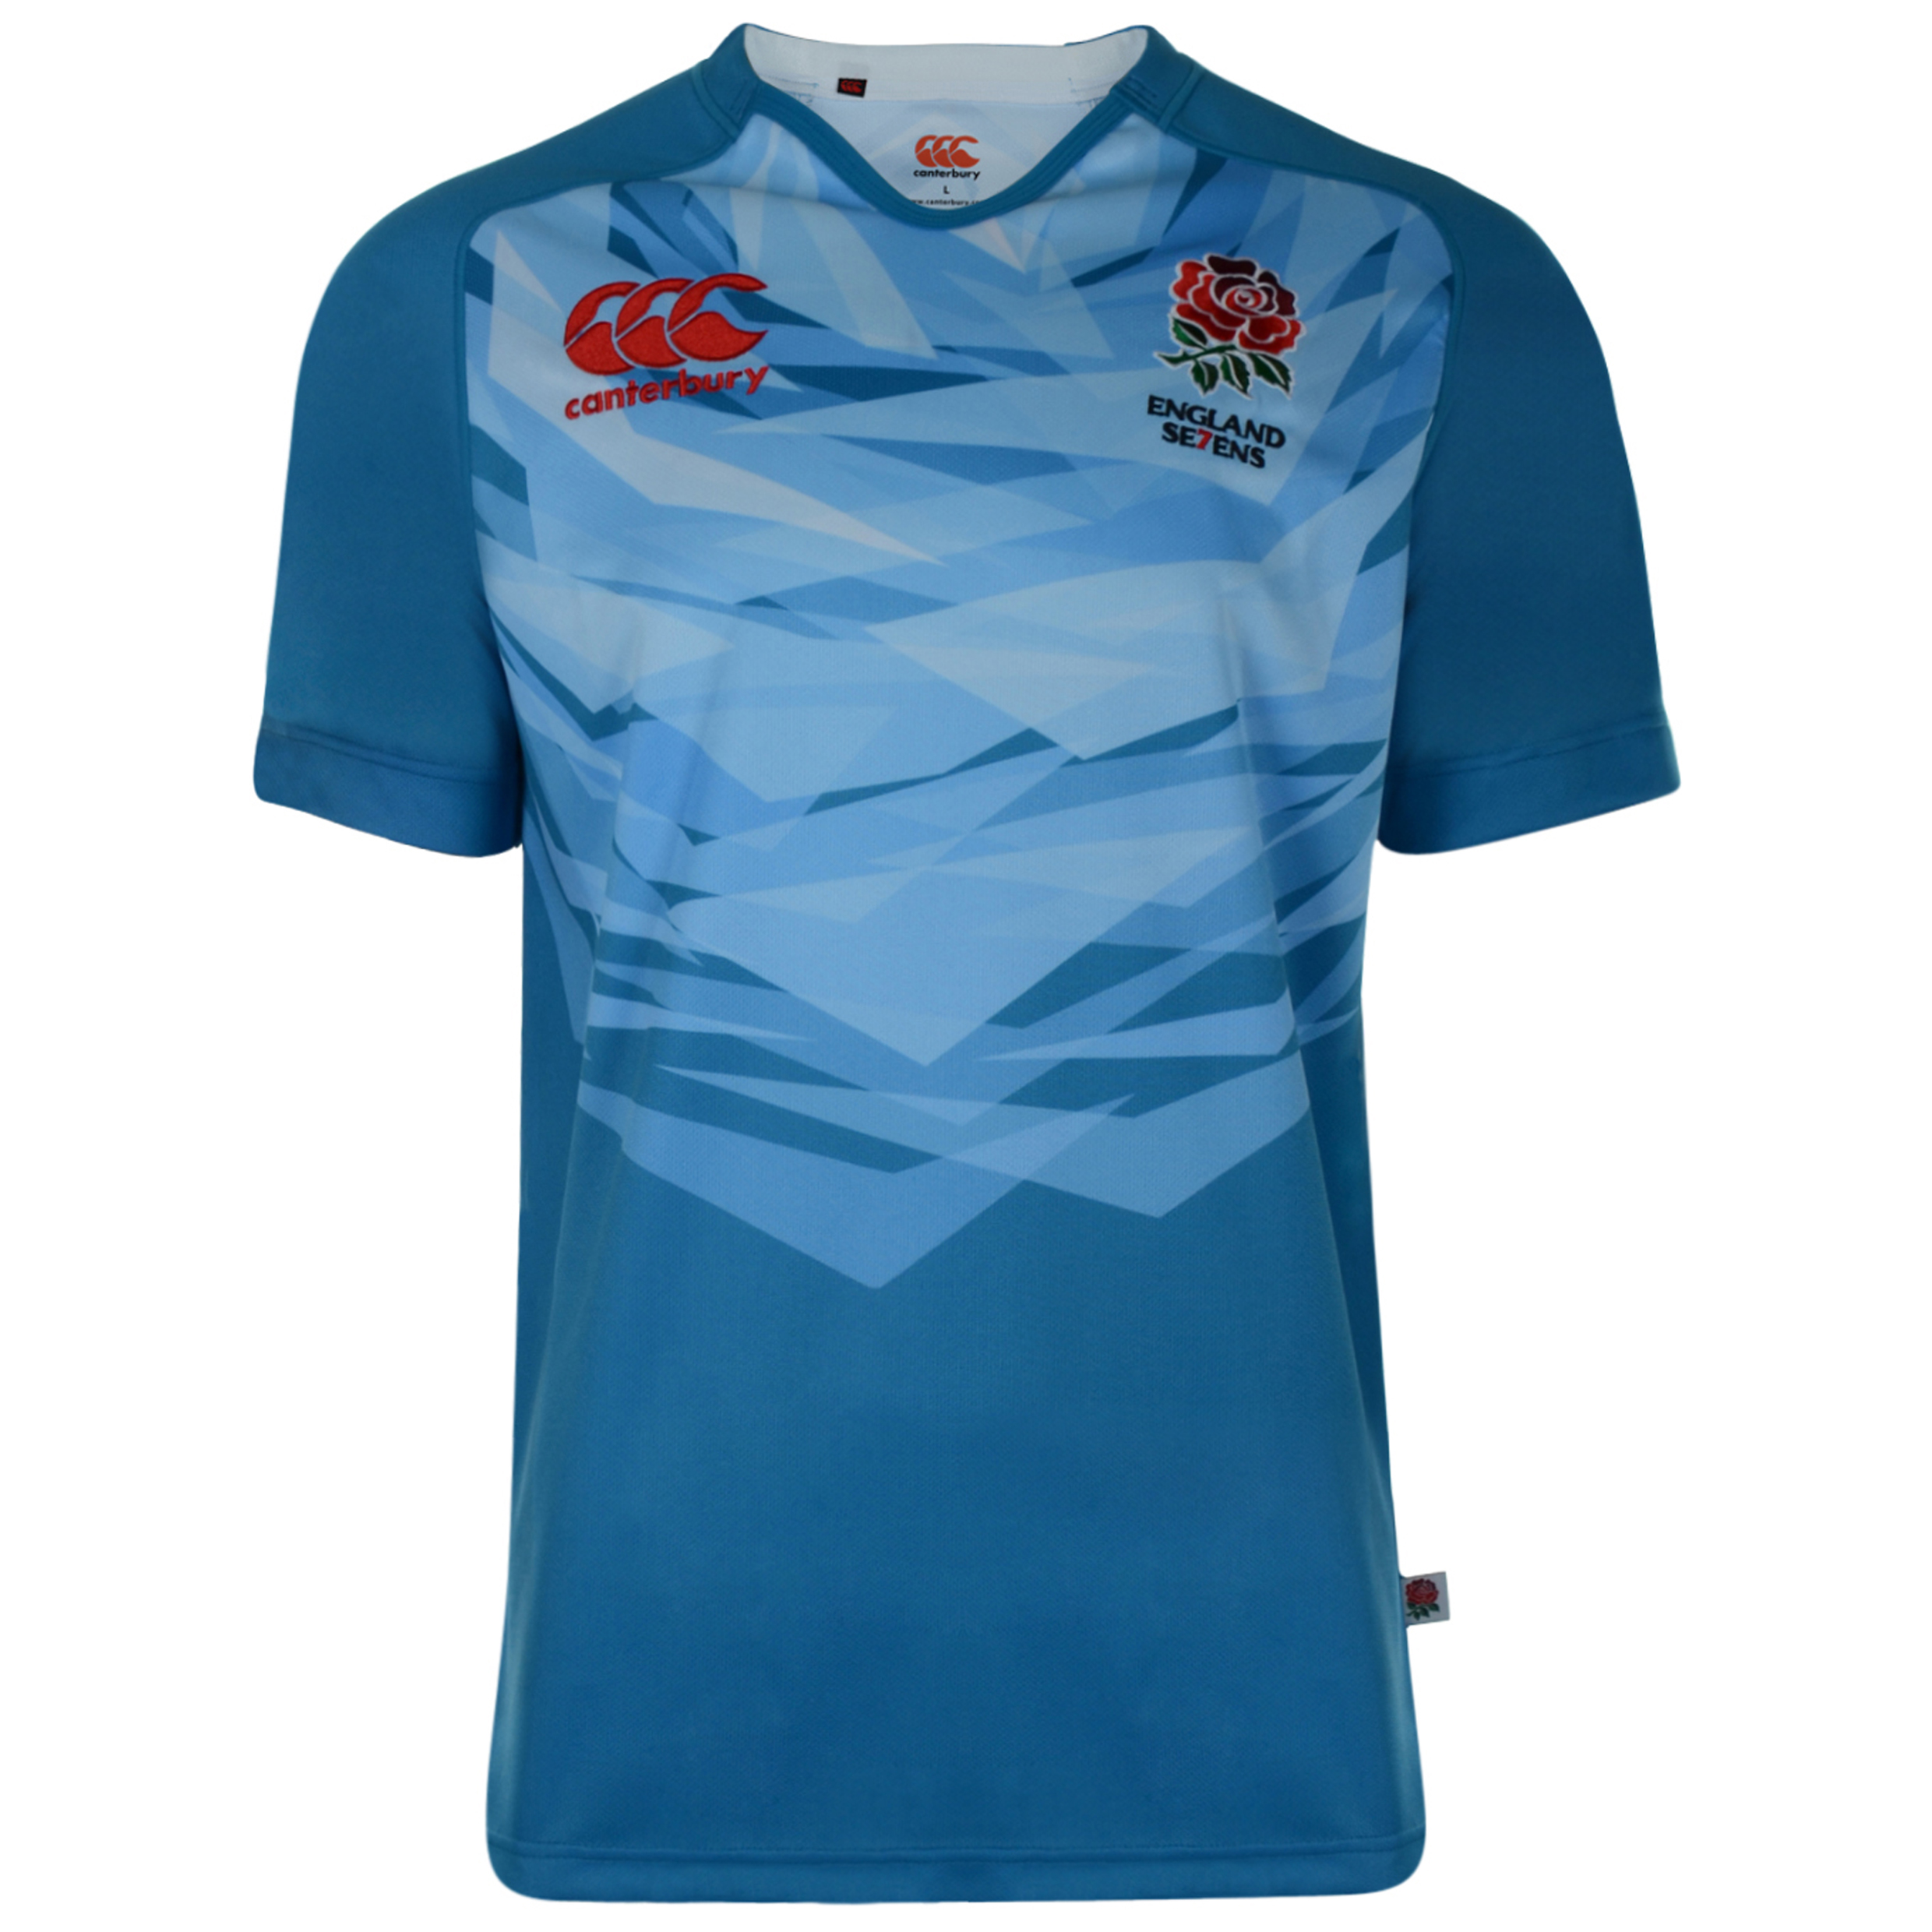 England Alternate 7'S Rugby Pro Shirt 2012/13 S/S